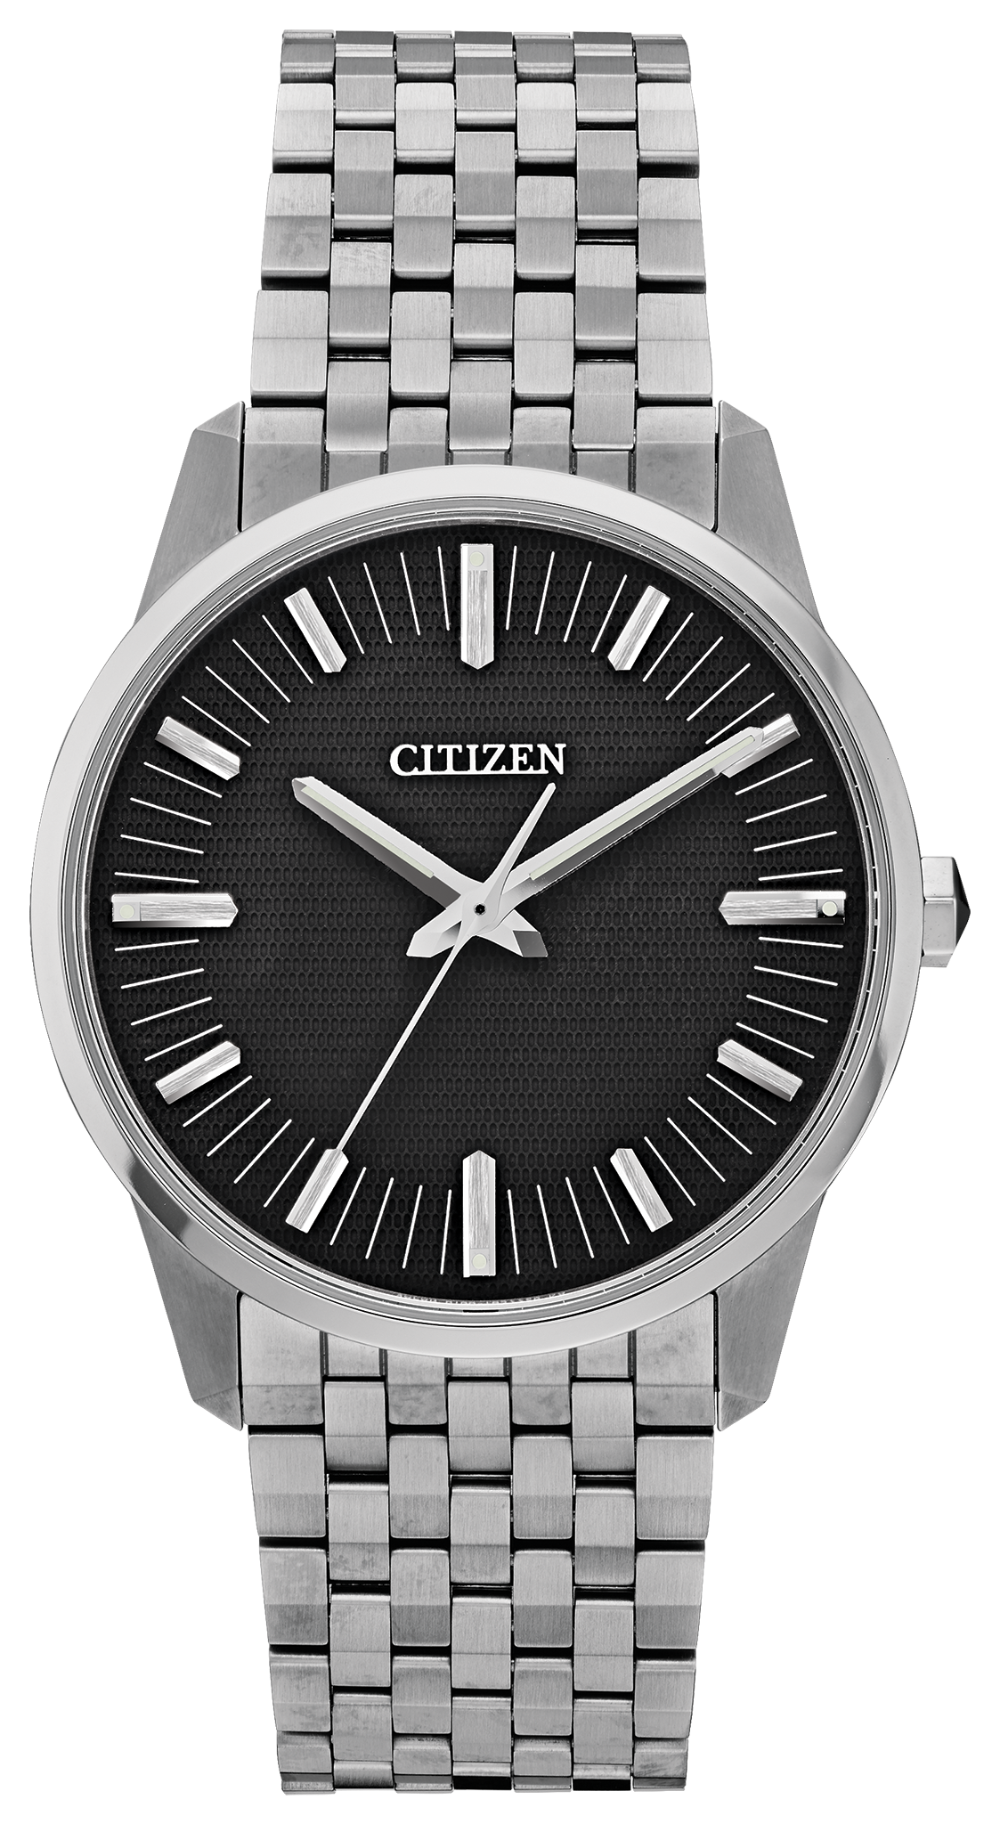 Citizen Caliber 100 EcoDrive Limited Edition Watch ในปี 2020